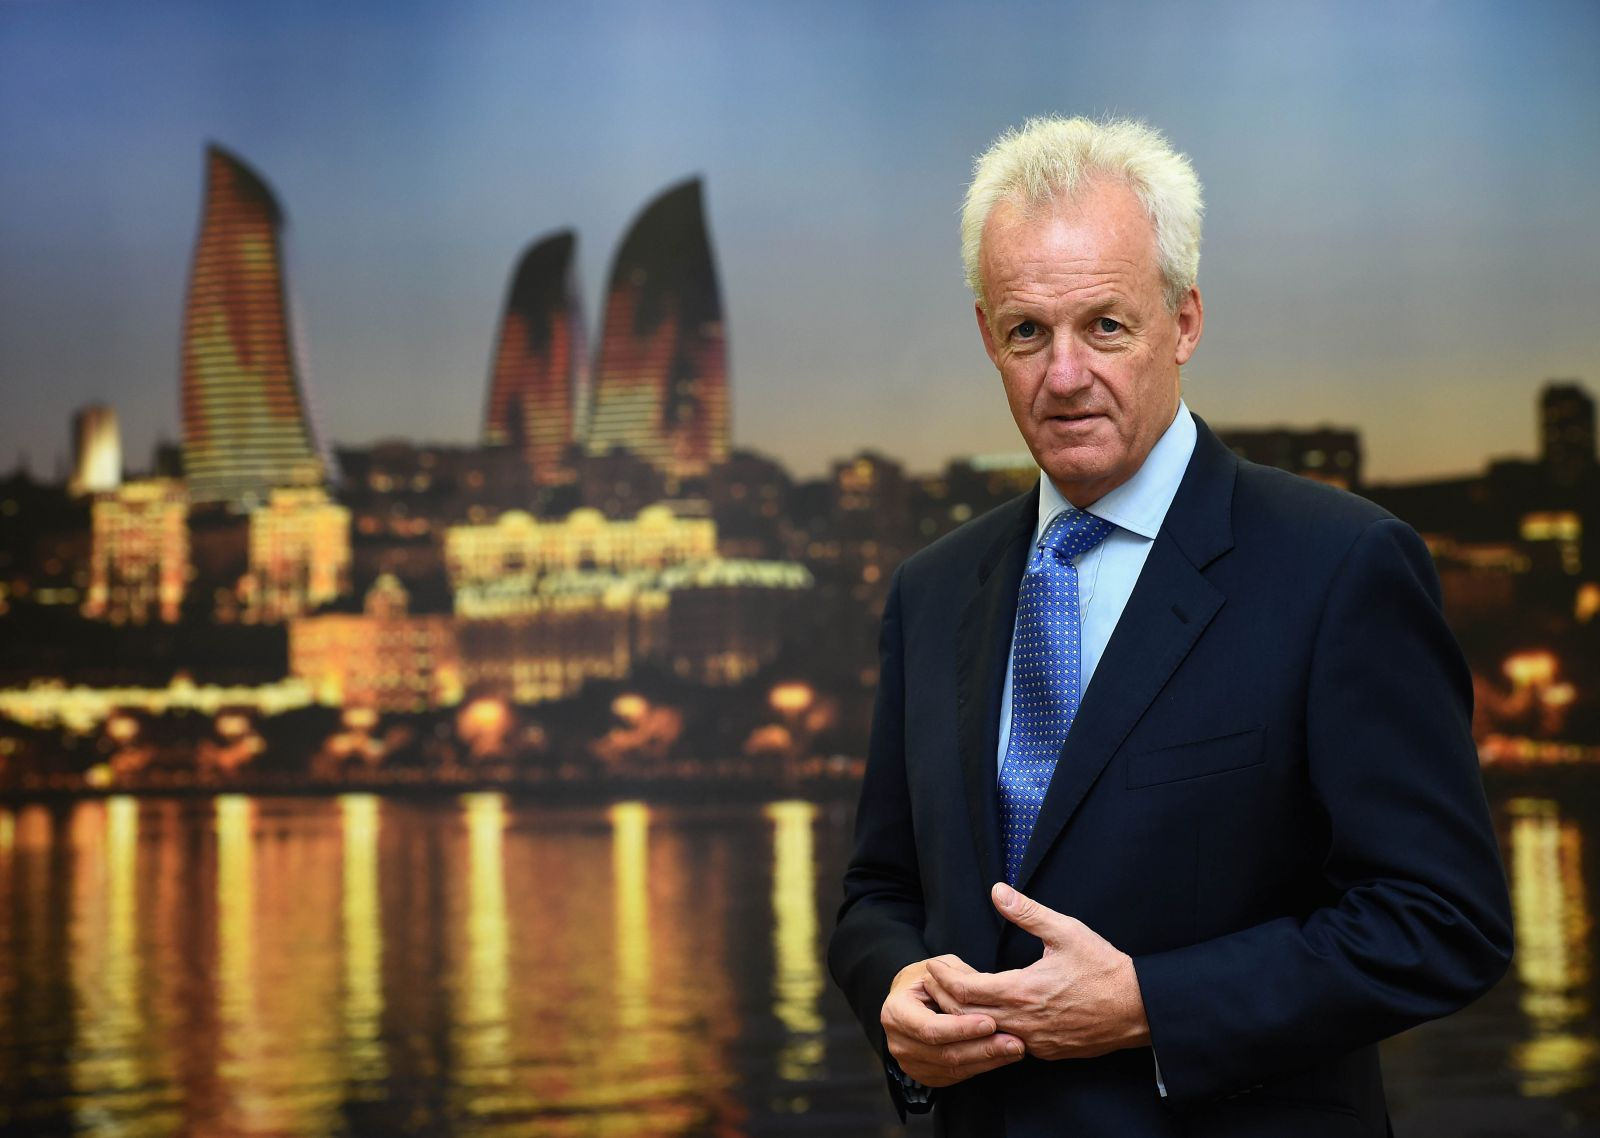 Baku 2015 chief operating officer Simon Clegg believes much effort is being made to increase public awareness of the European Games ©Baku 2015